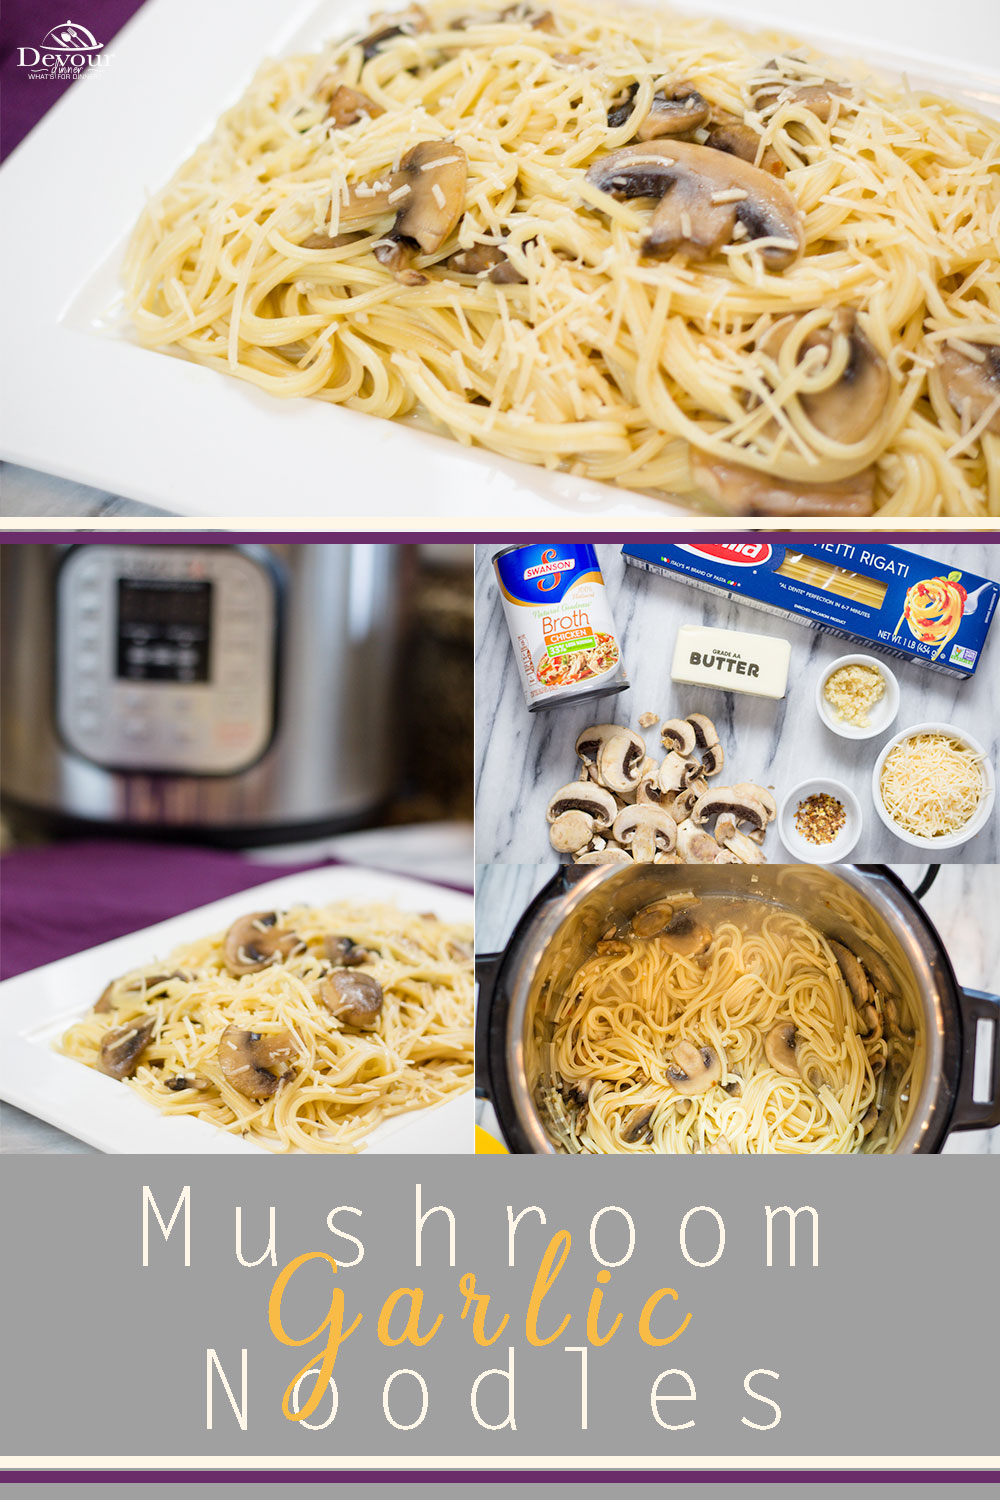 Mushroom Garlic Noodles are a perfect side dish with any meal. These noodles are full of great flavor without all the fat from a heavy sauce. And they taste great! #devourdinner #easyrecipe #Instantpot @instantpotrecipe #easysidedish #sidedish #recipe #recipes #food #foodie #Noodles #mushroom #yum #kidapproved #4minrecipe #Pressurecooker